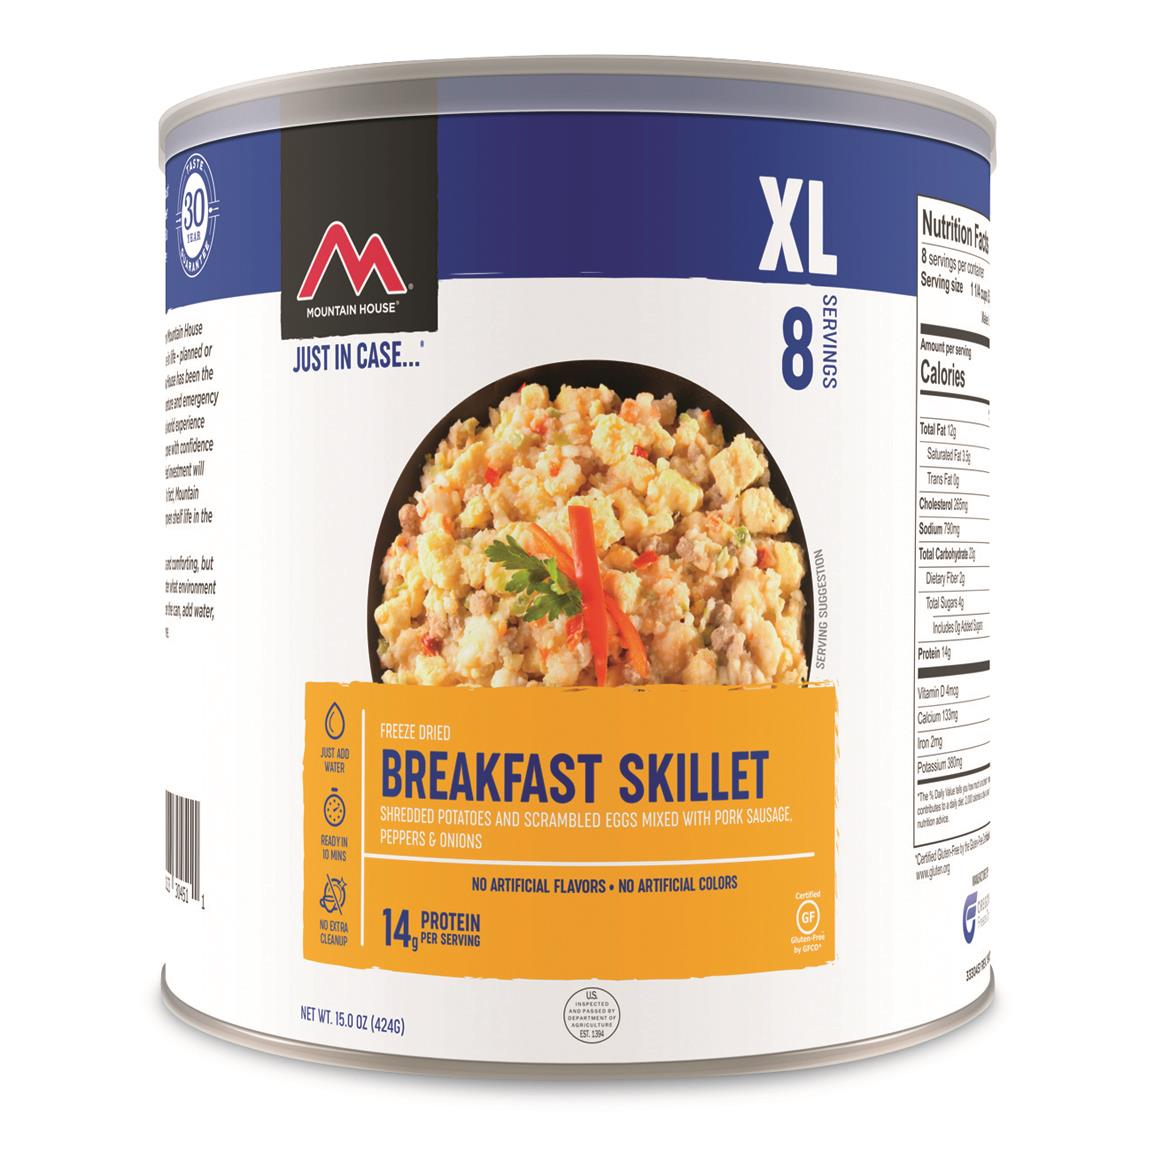 Mountain House Emergency Food Freeze-Dried Breakfast Skillet, 8 Servings